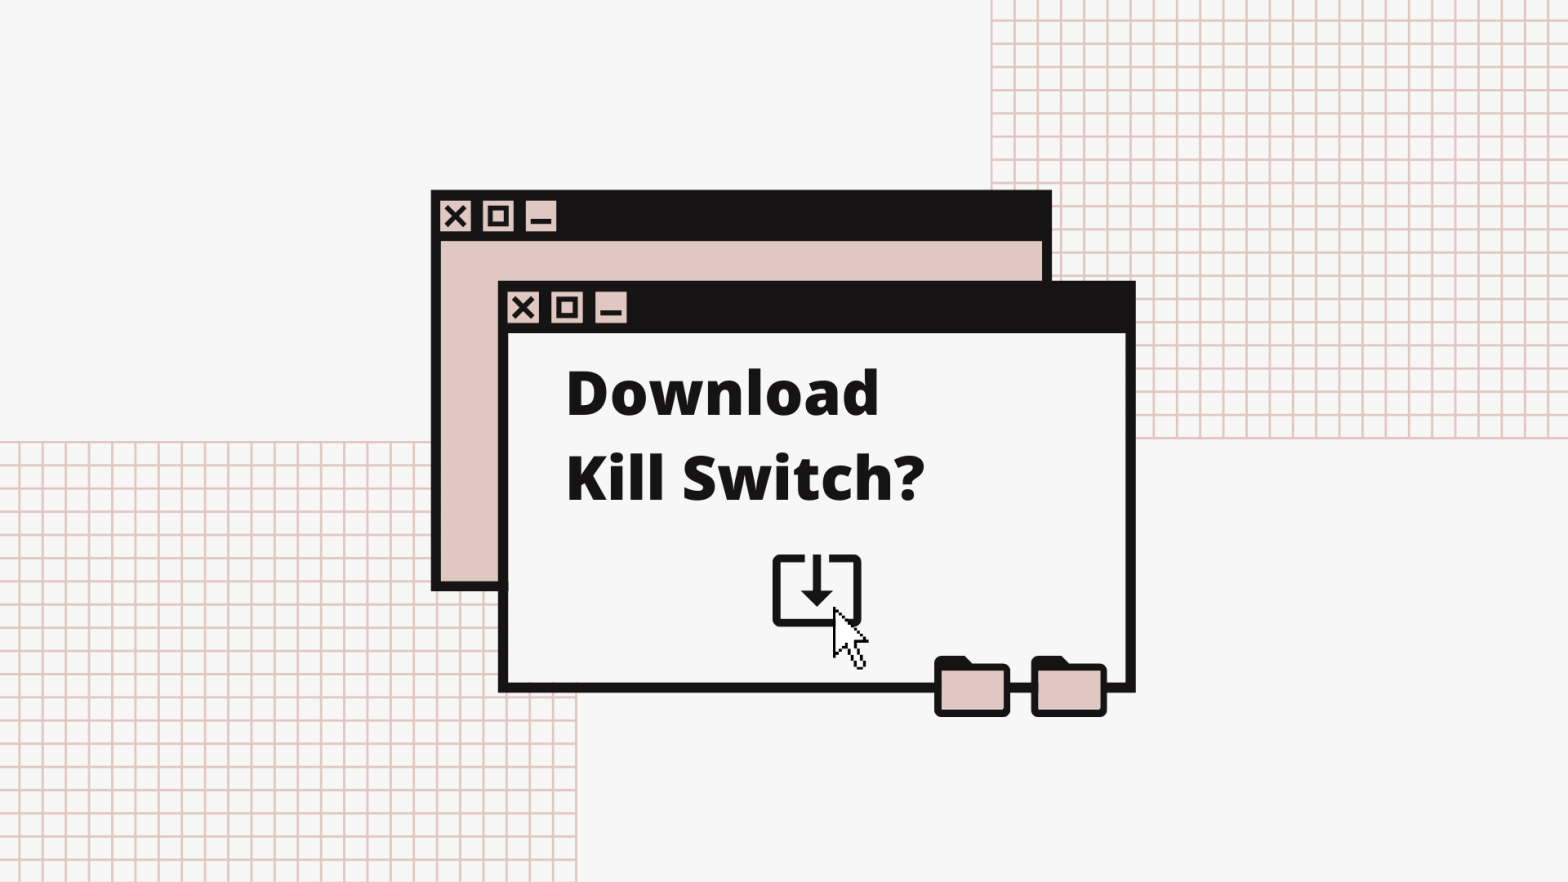 Image showing mouse cursor selecting the download button in response to the question 'Download Kill Switch?'